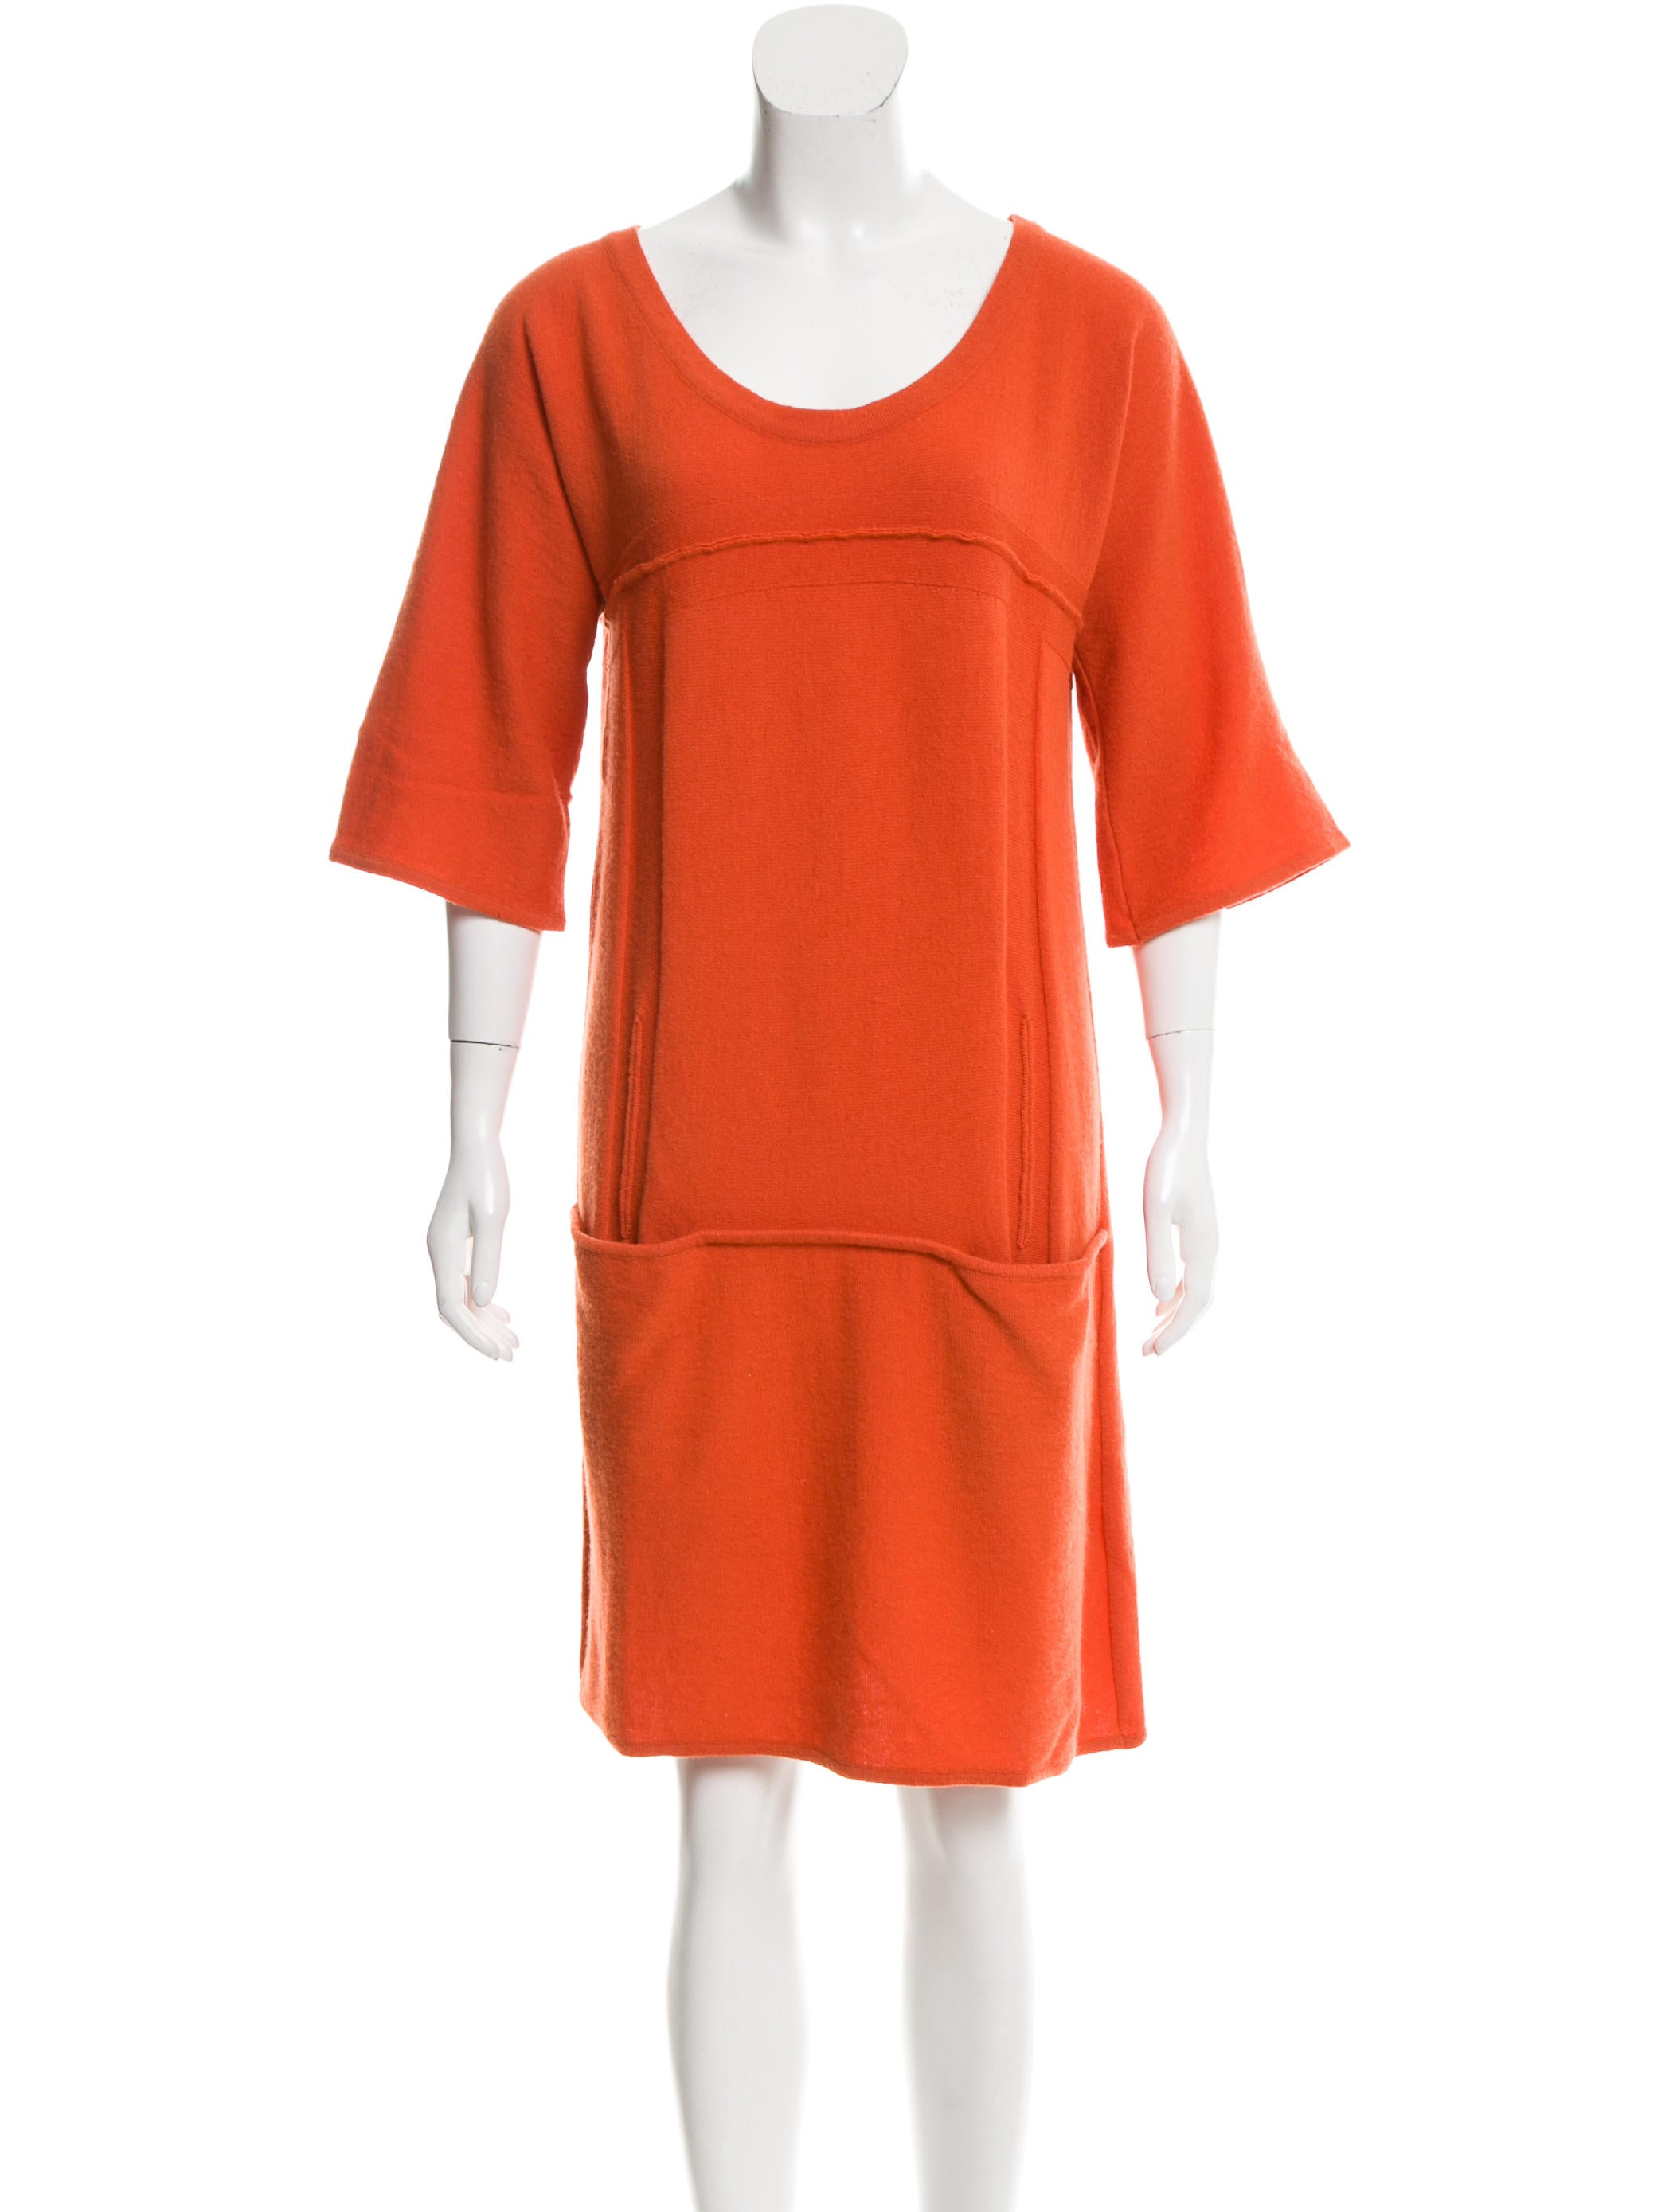 Chlou00e9 Wool Sweater Dress - Clothing - CHL51970 | The RealReal